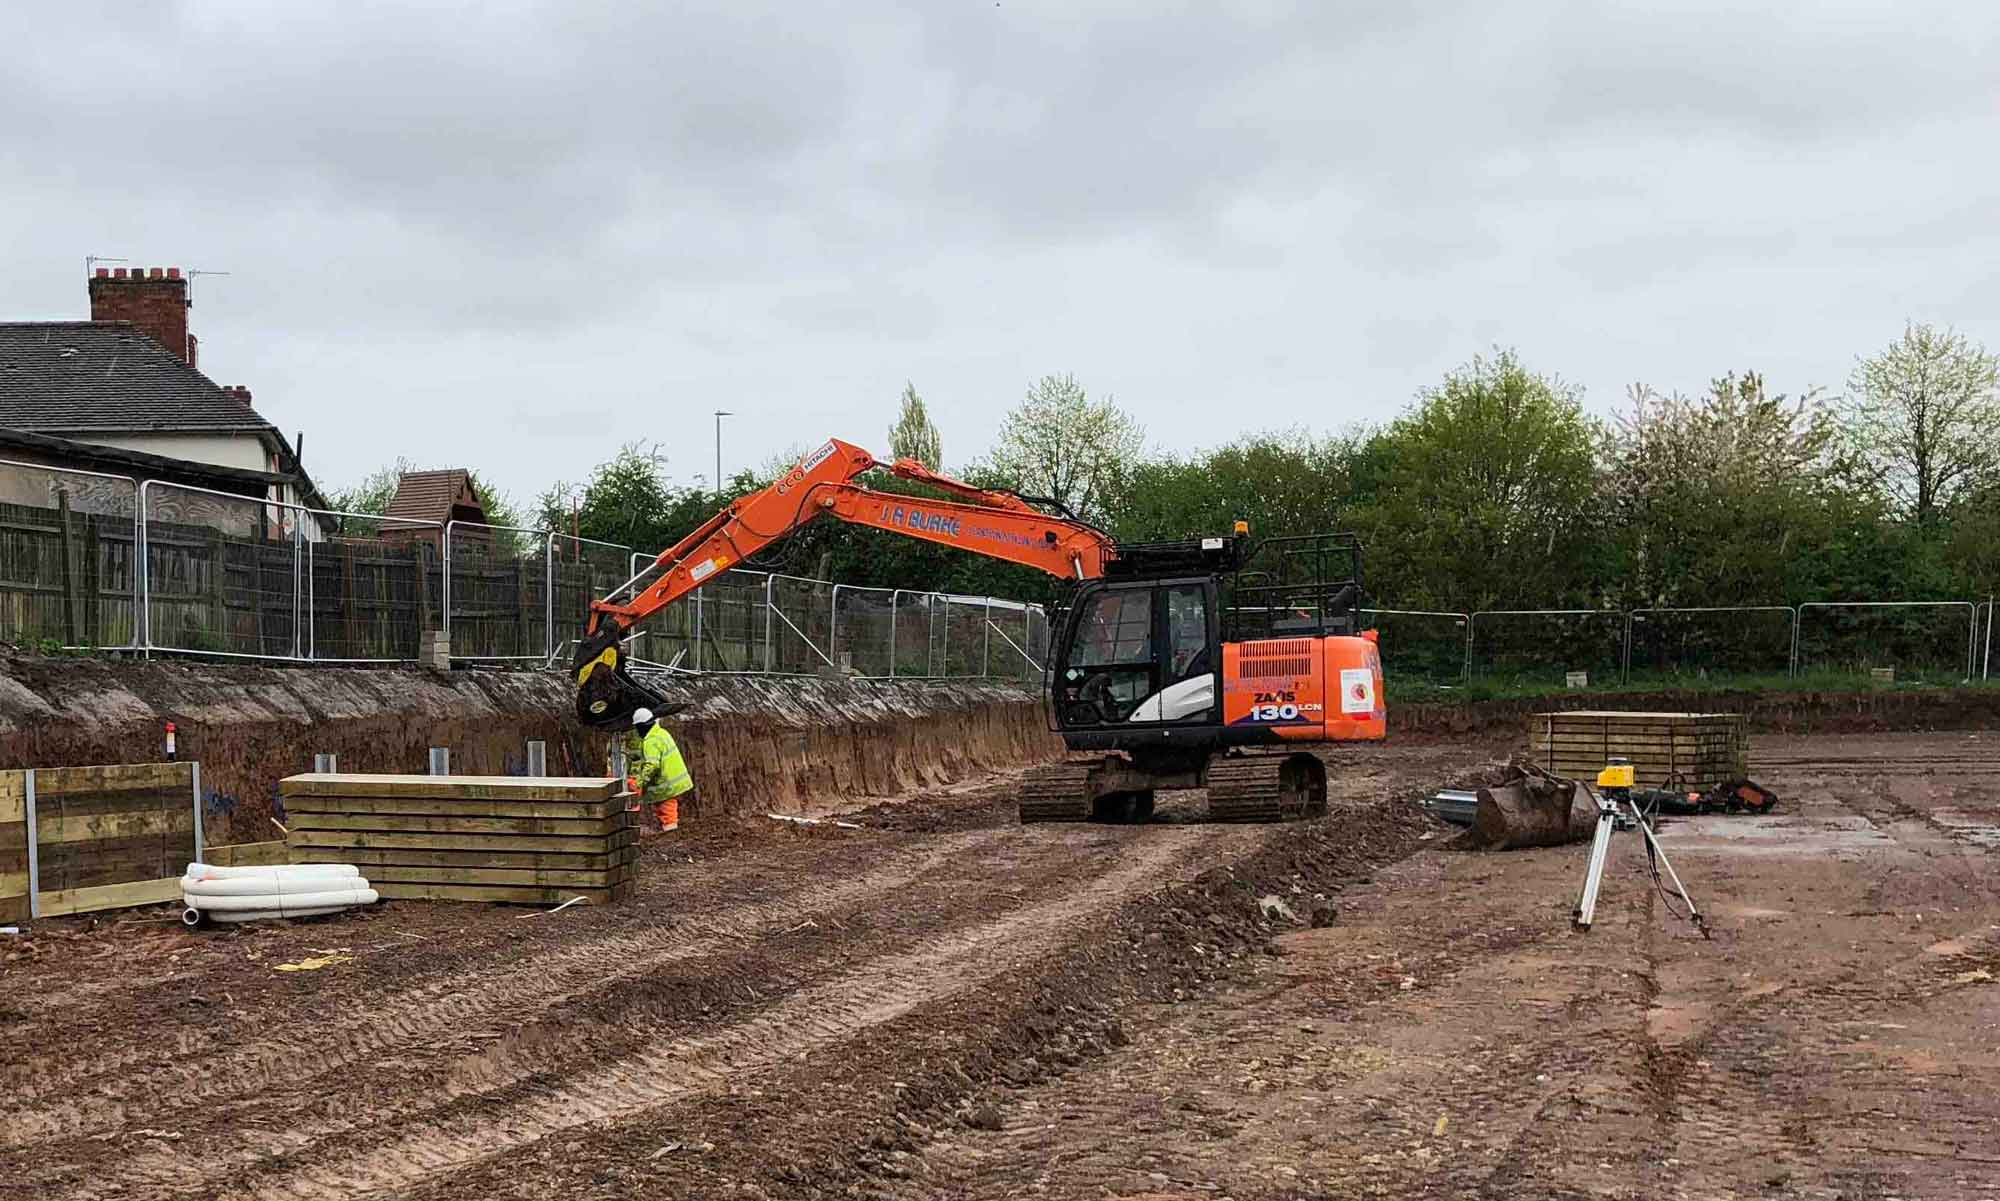 Loughborough - J A Burke Construction Limited - Midlands based ground works, civils and RC frame company.